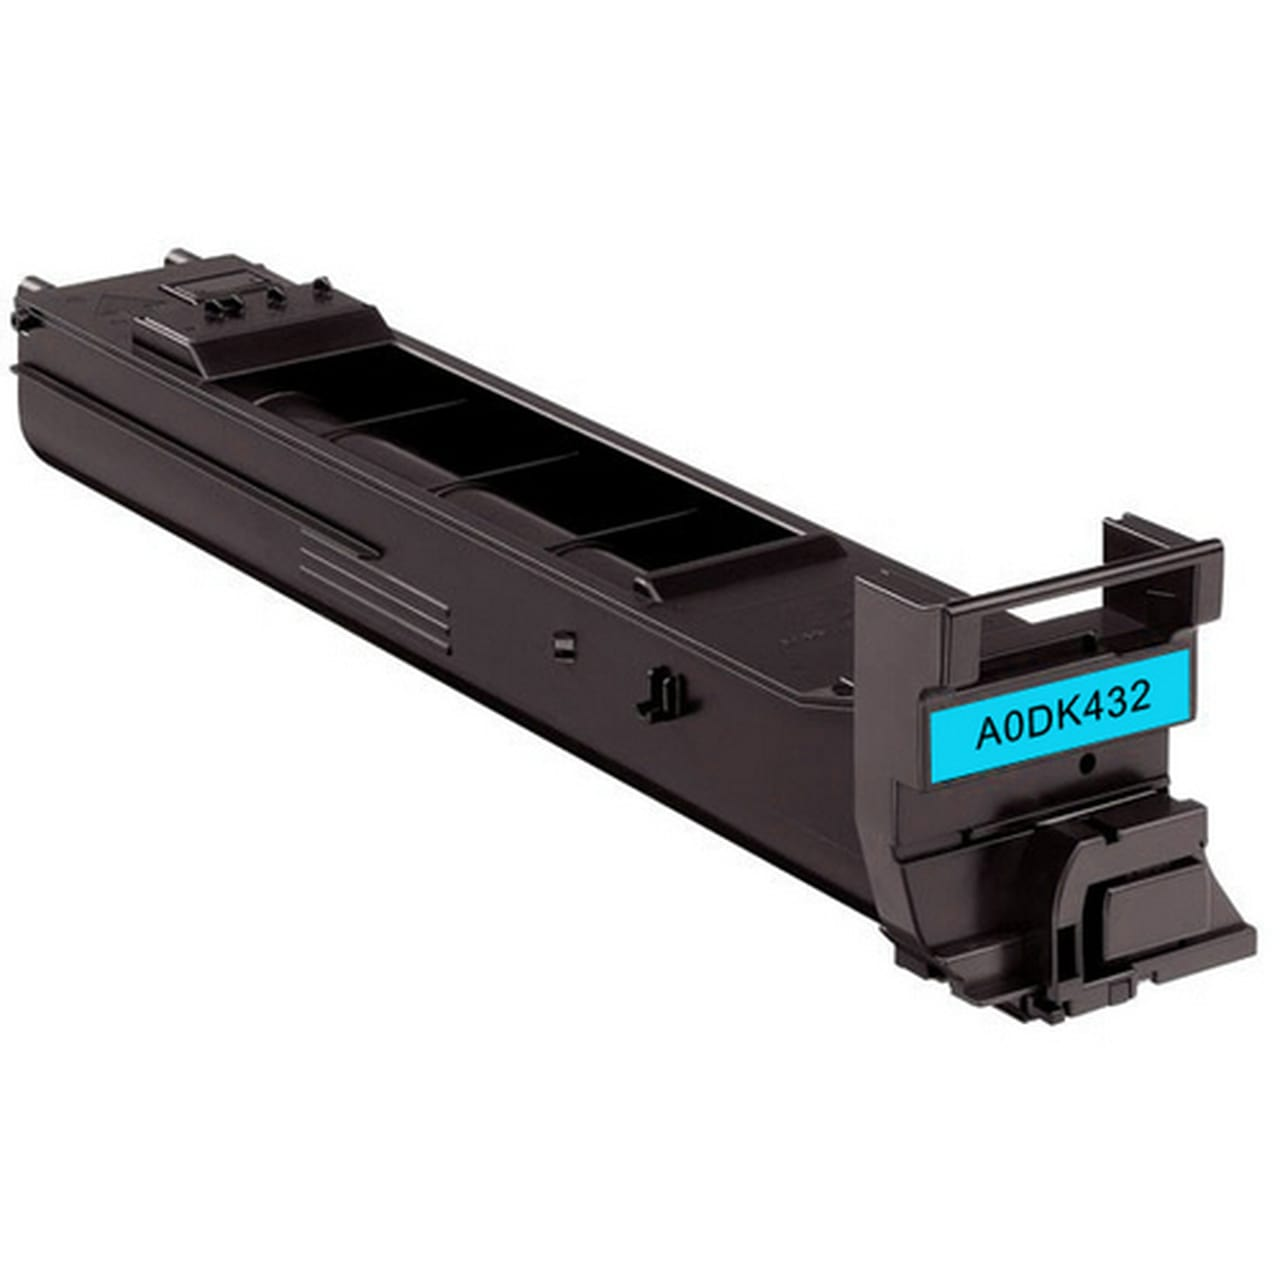 A0DK432 Toner Cartridge - Konica-Minolta Remanufactured  (Cyan)